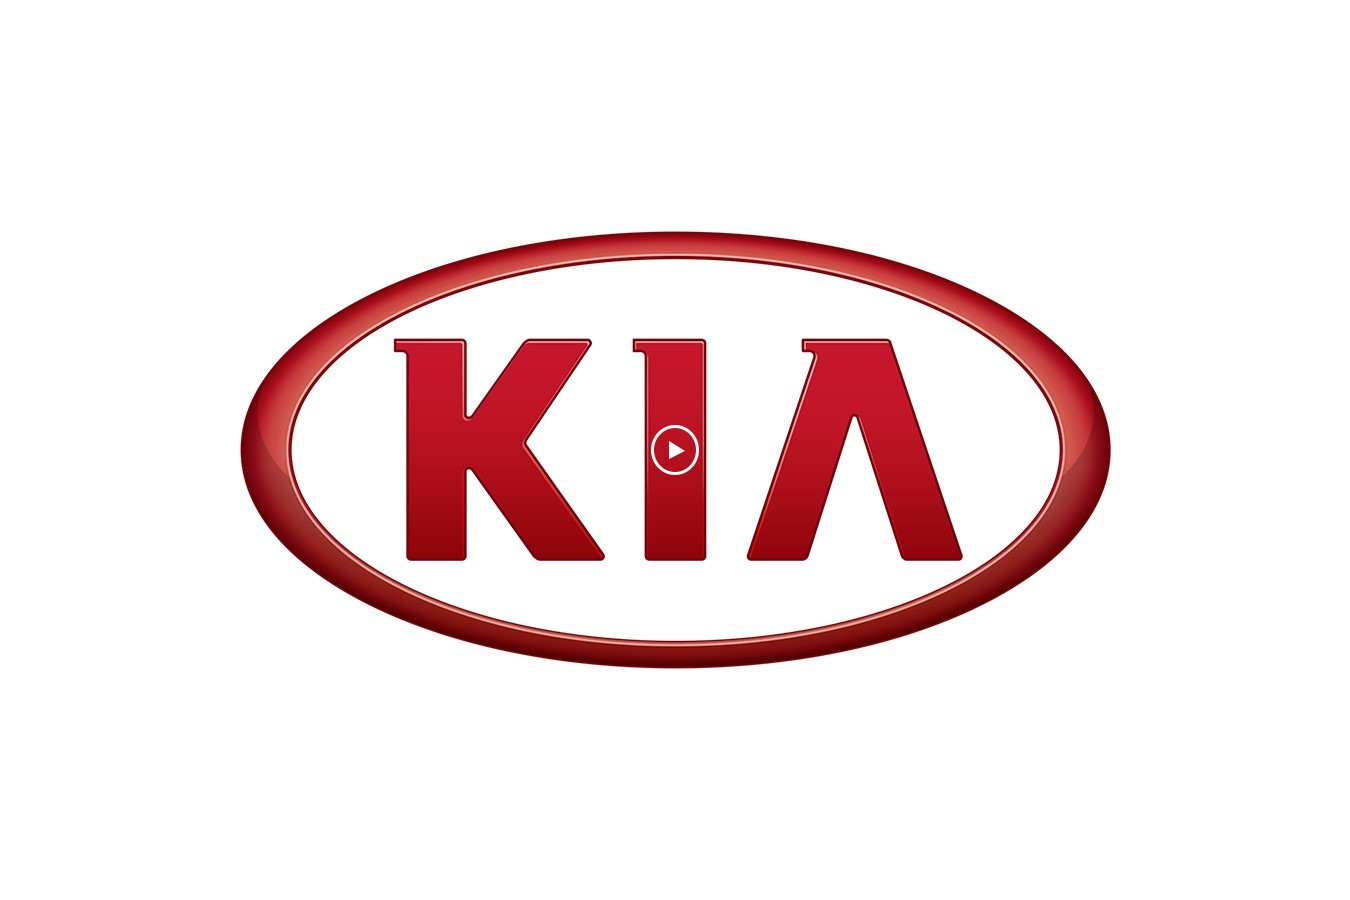 VIDEO DEMONSTRATING KIA REAR OCCUPANT ALERT SYSTEM (B-ROLL)